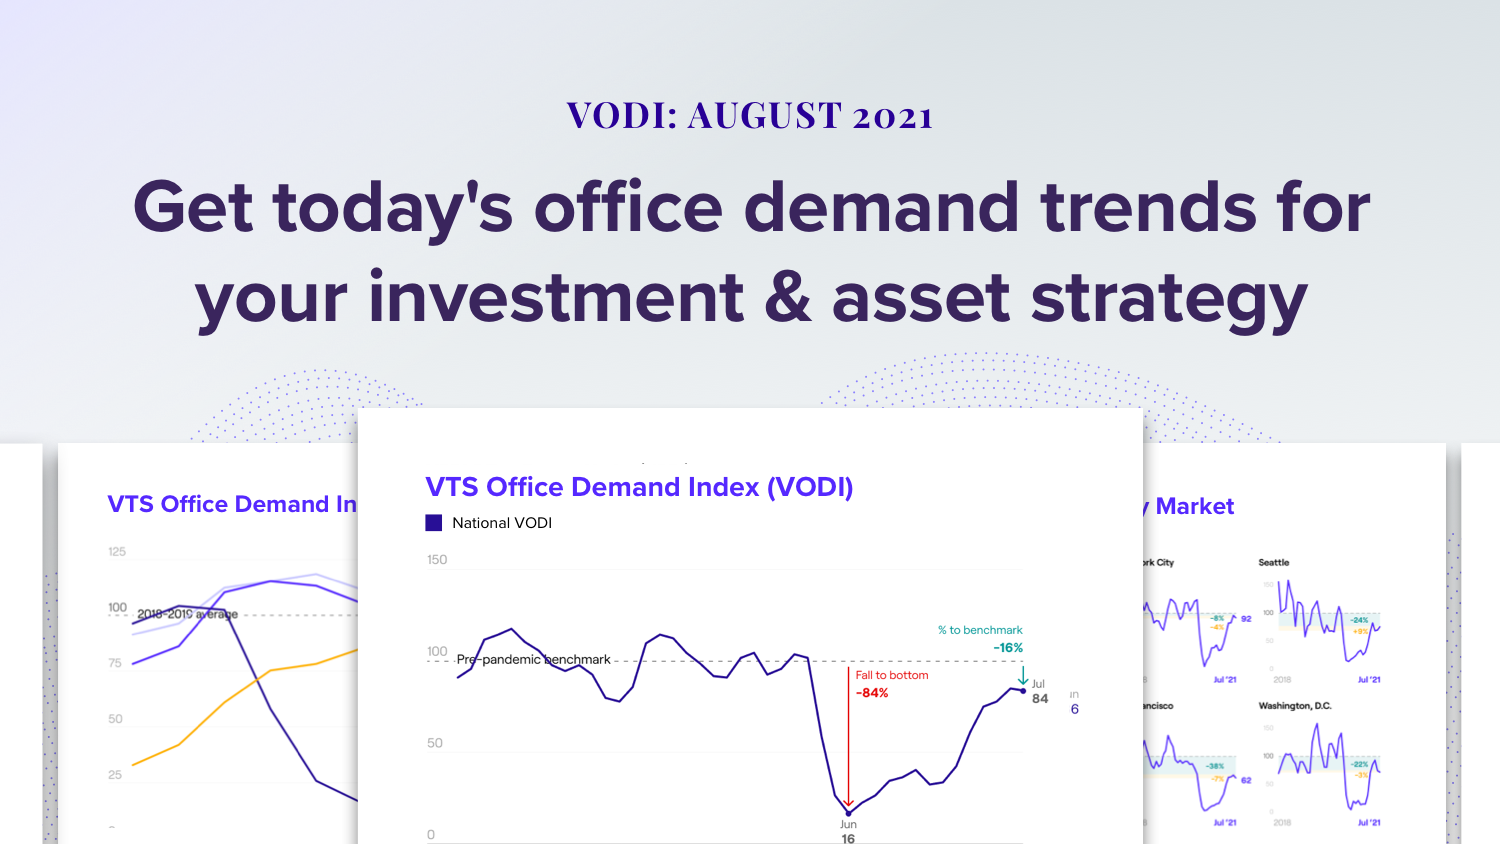 Uncertainty Over the Delta Variant and Seasonality Slow New Demand for Office Space